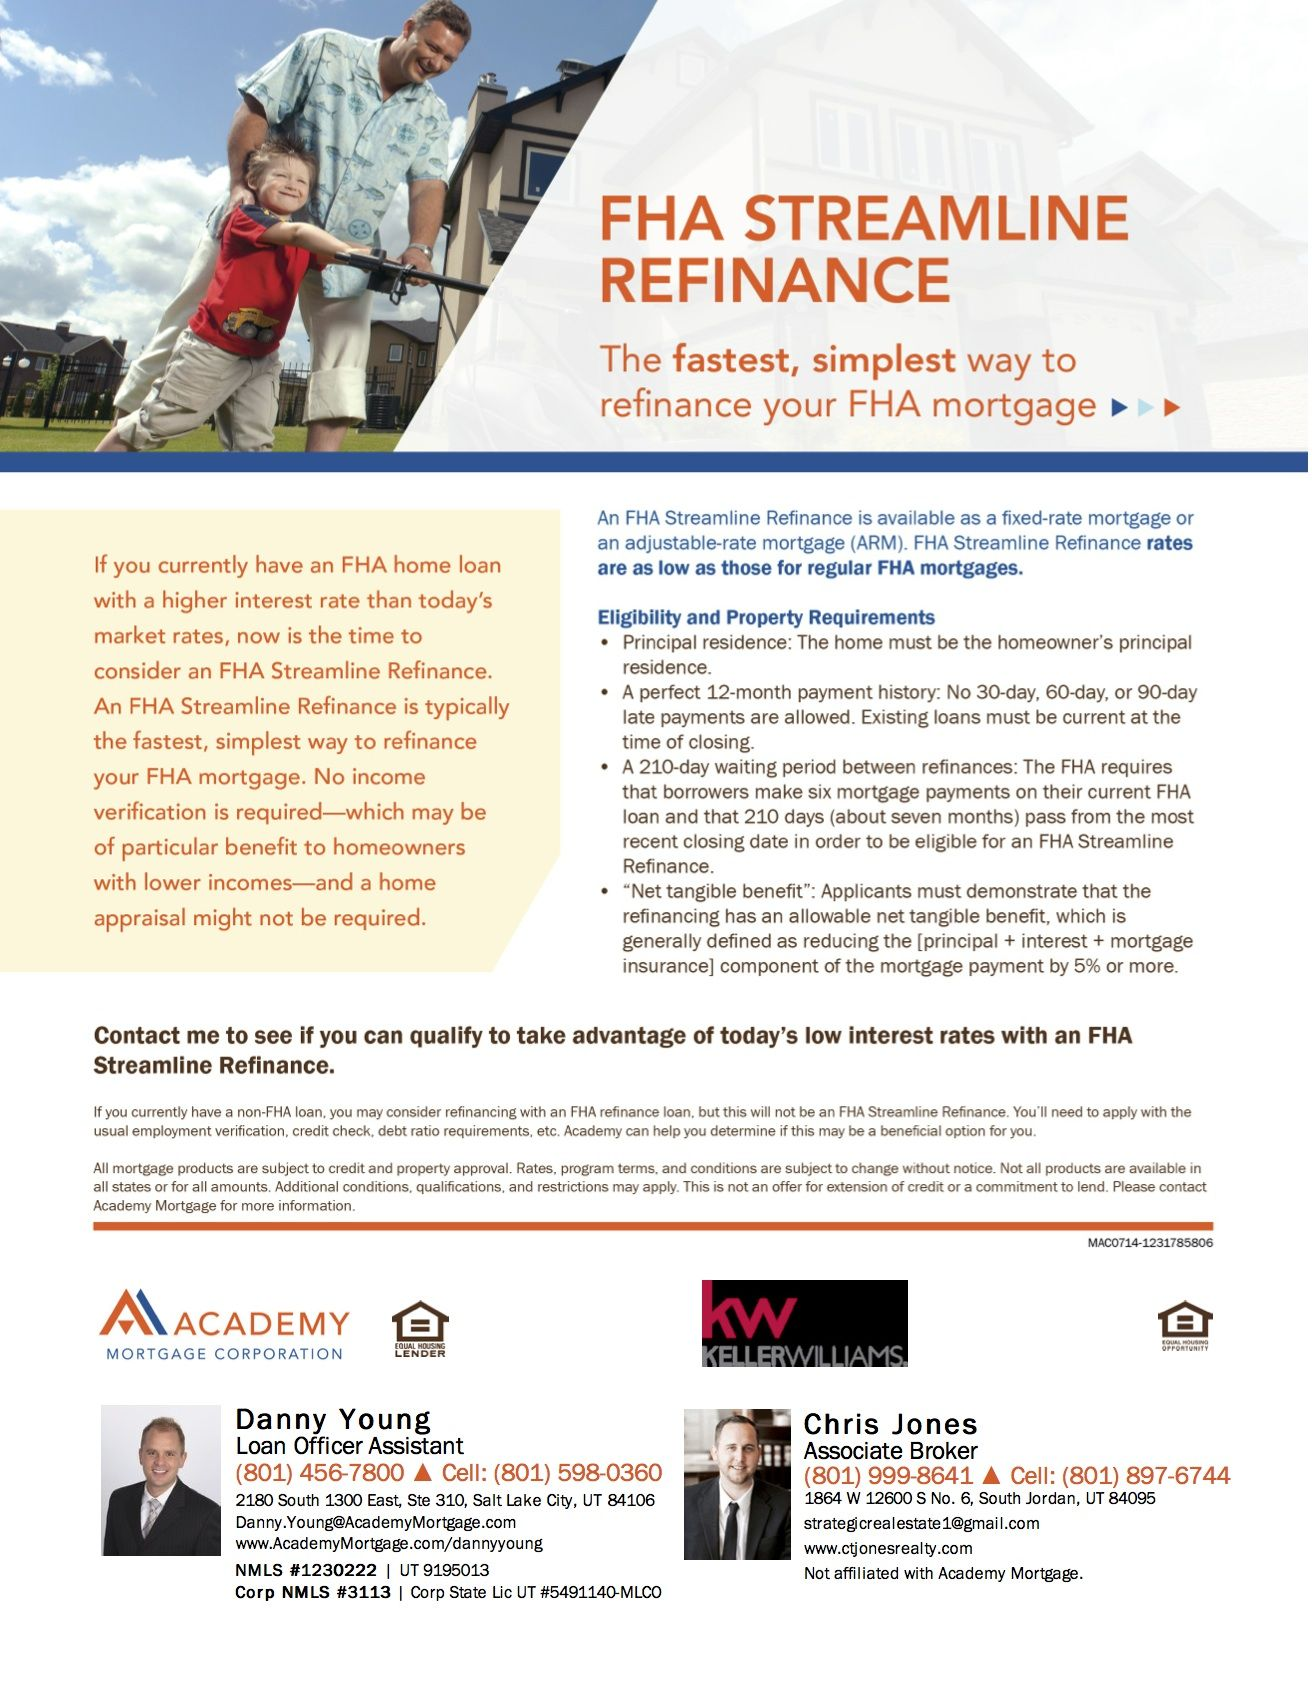 Worksheets Fha Streamline Refinance Worksheet find out the benefits and eligibility requirements of an fha streamline refinance